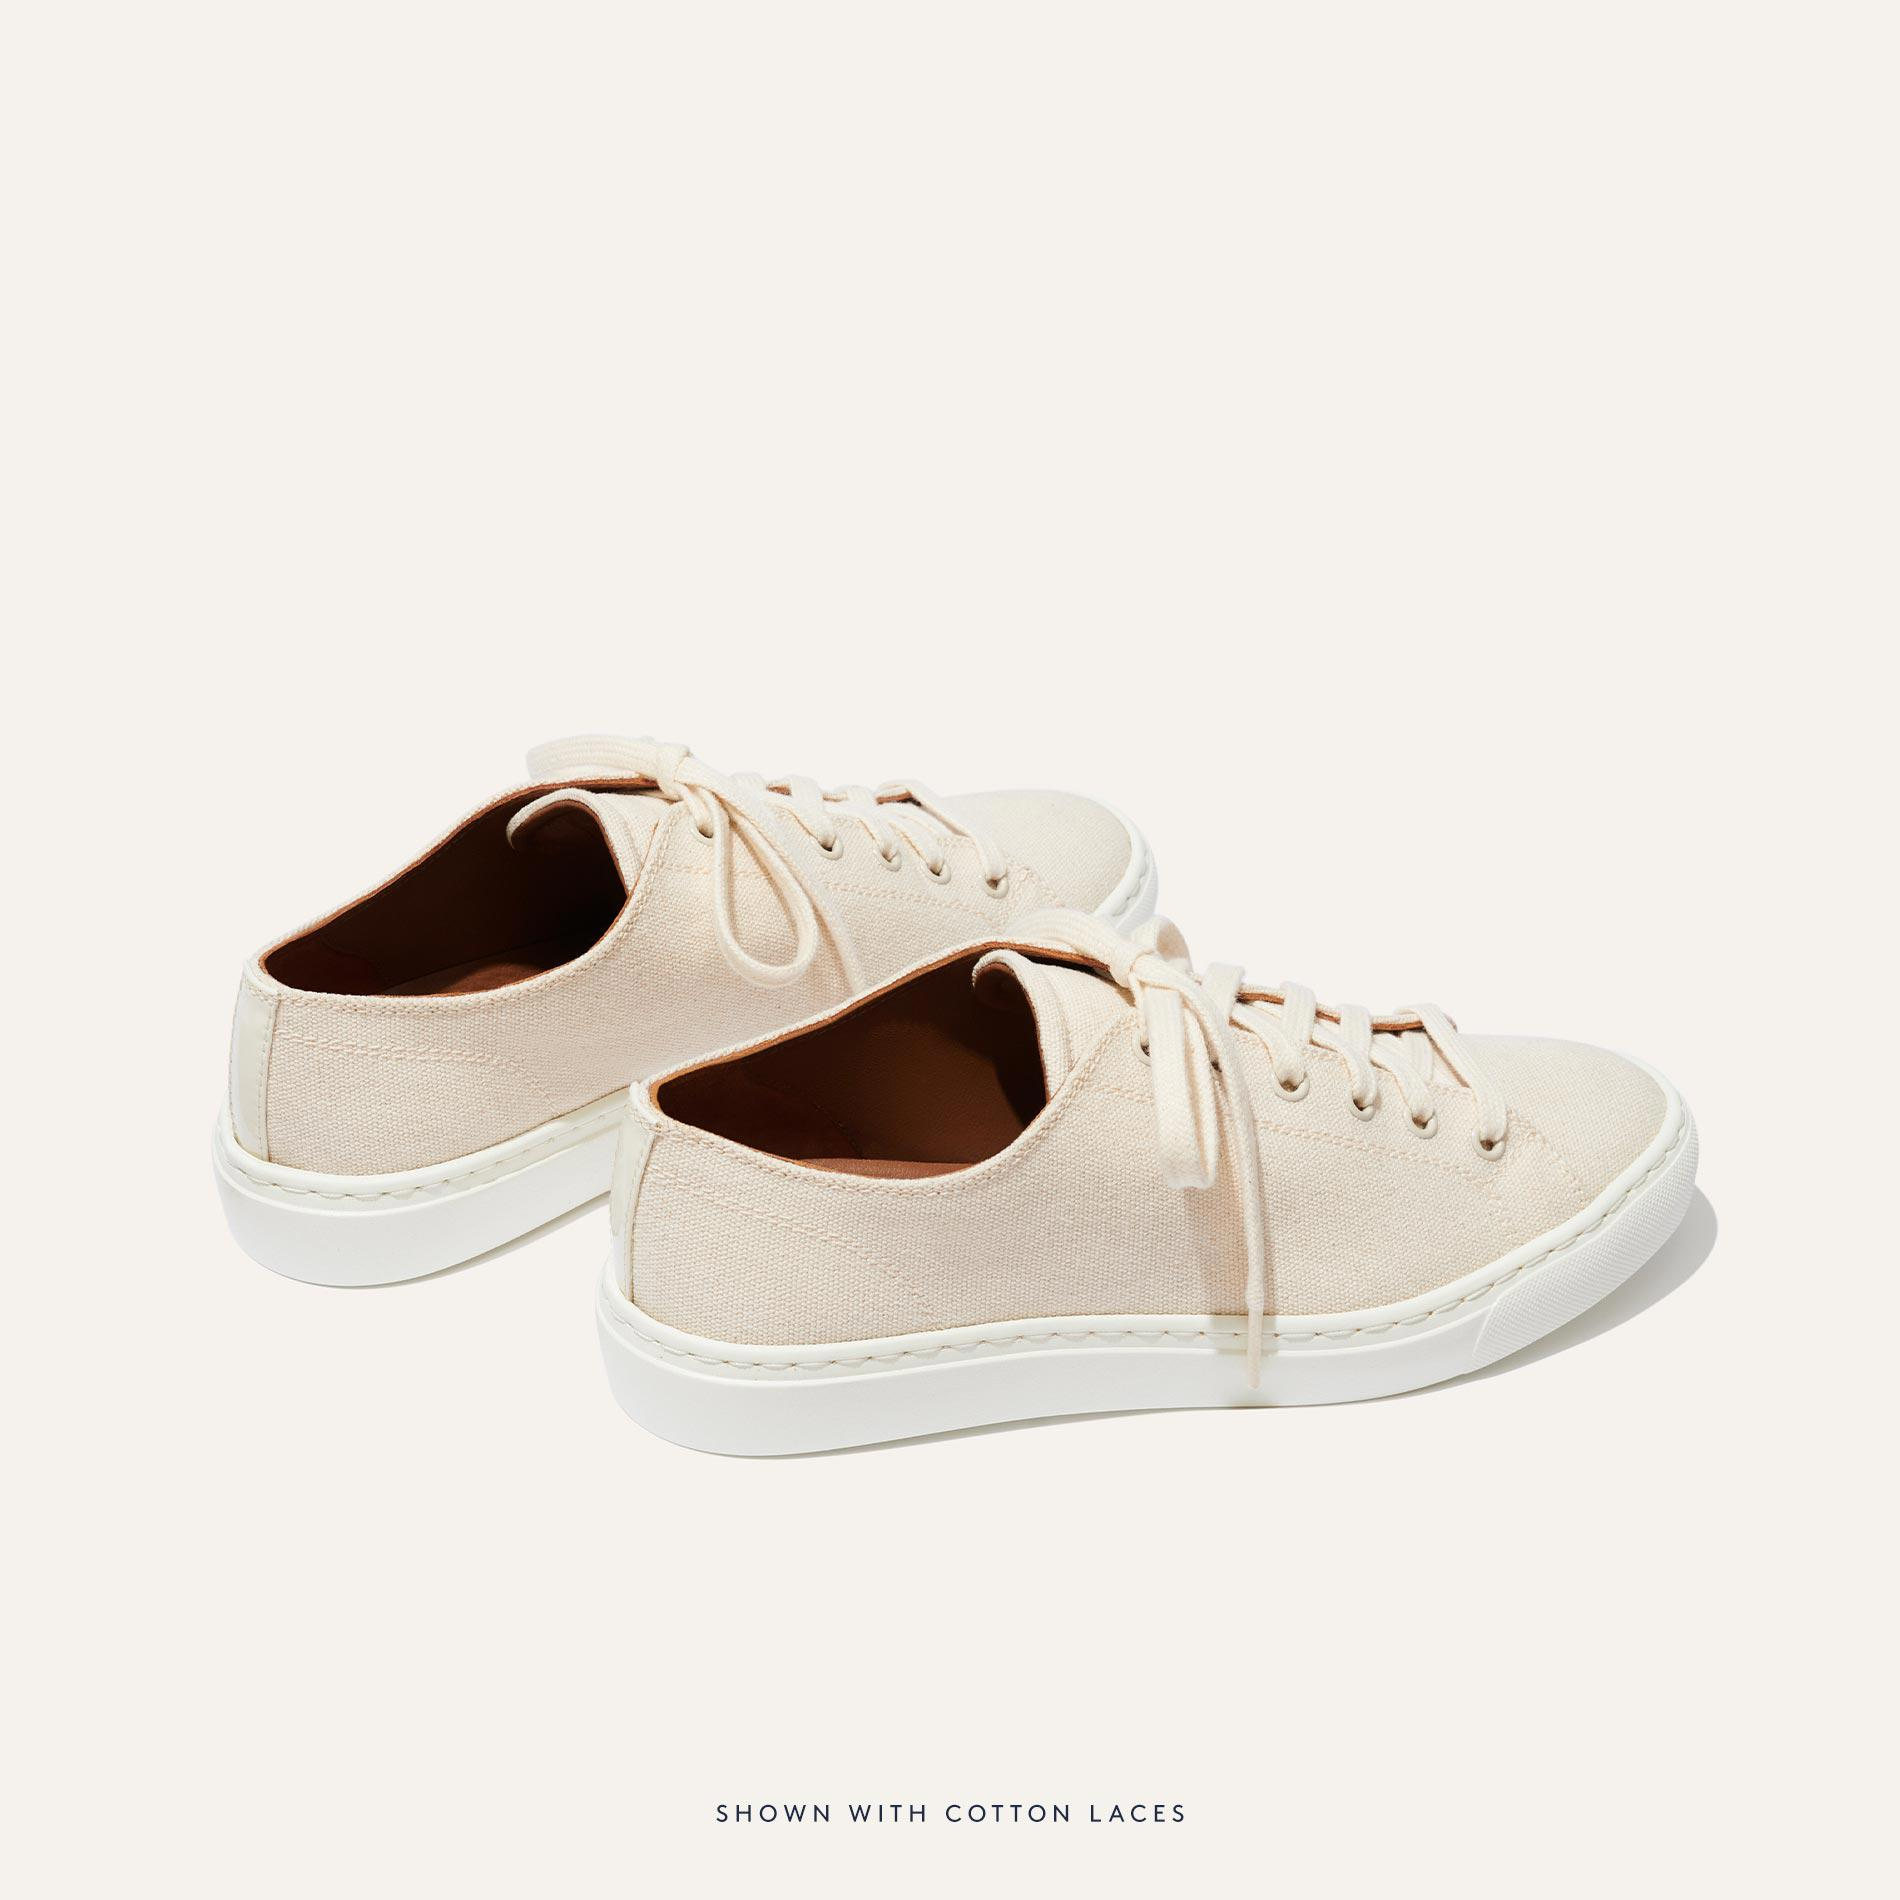 The Summer Sneaker - Ivory Canvas 3